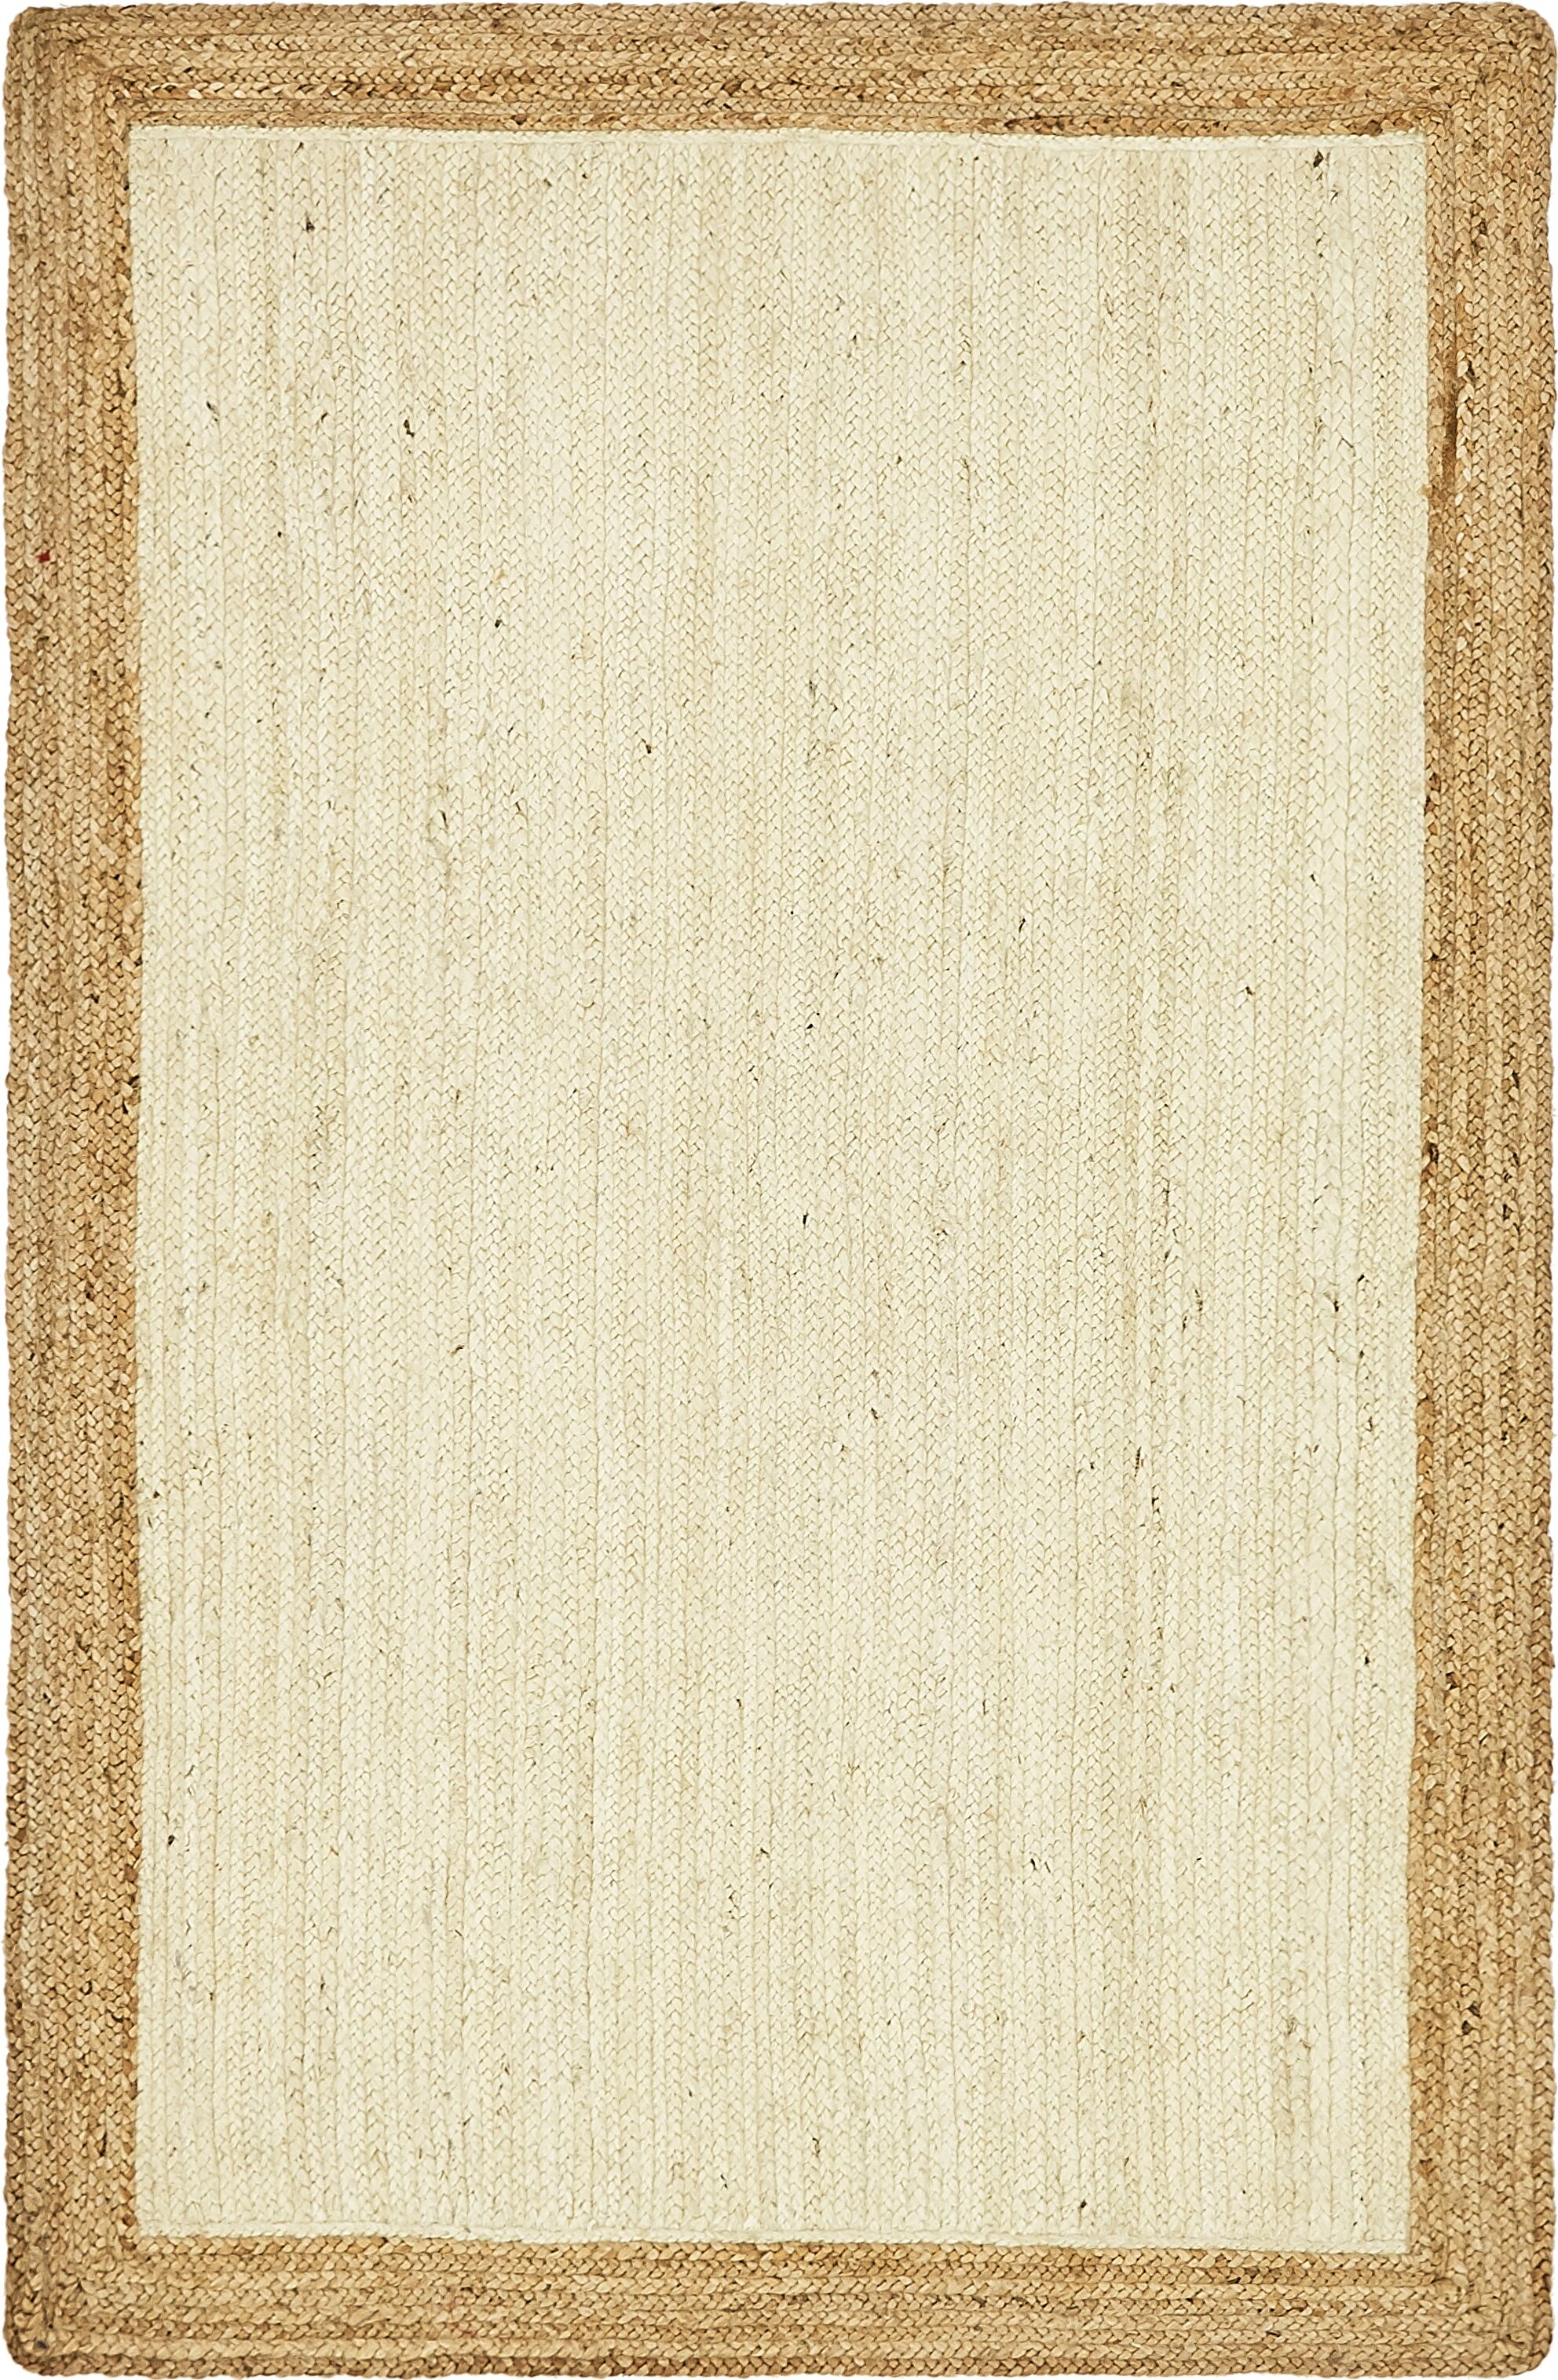 Antiqua Hand-Braided White Area Rug Rug Size: Rectangle 5' x 8'